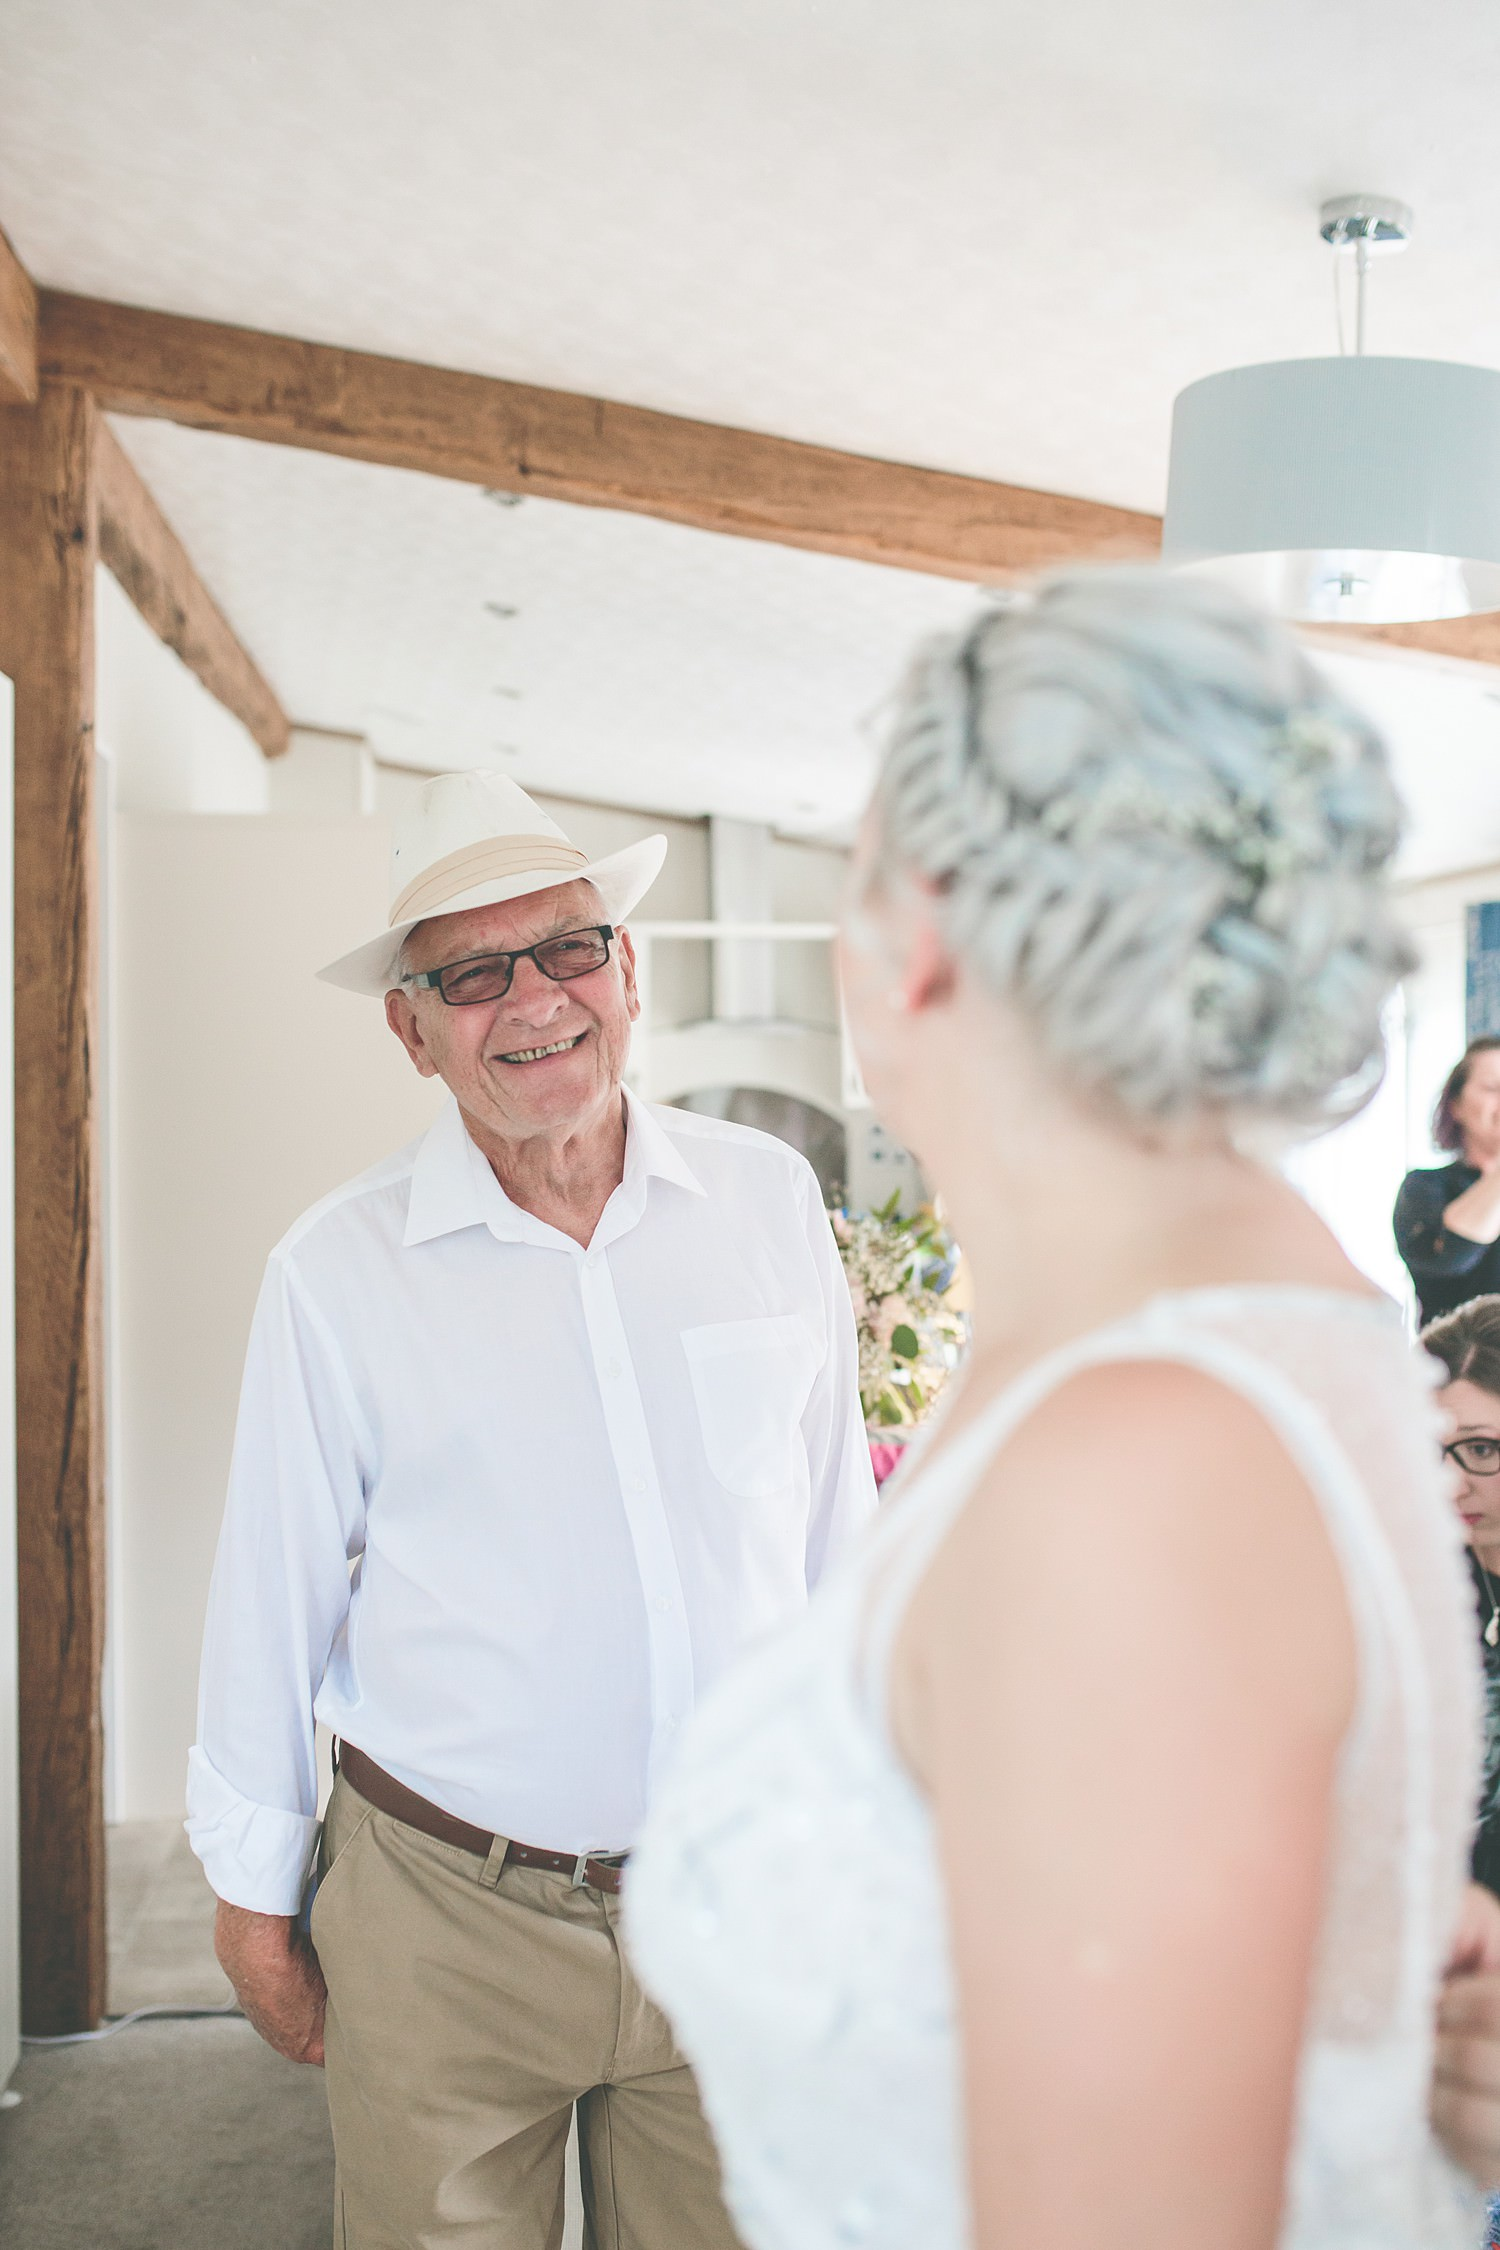 Cornwall wedding photographer in Shropshire